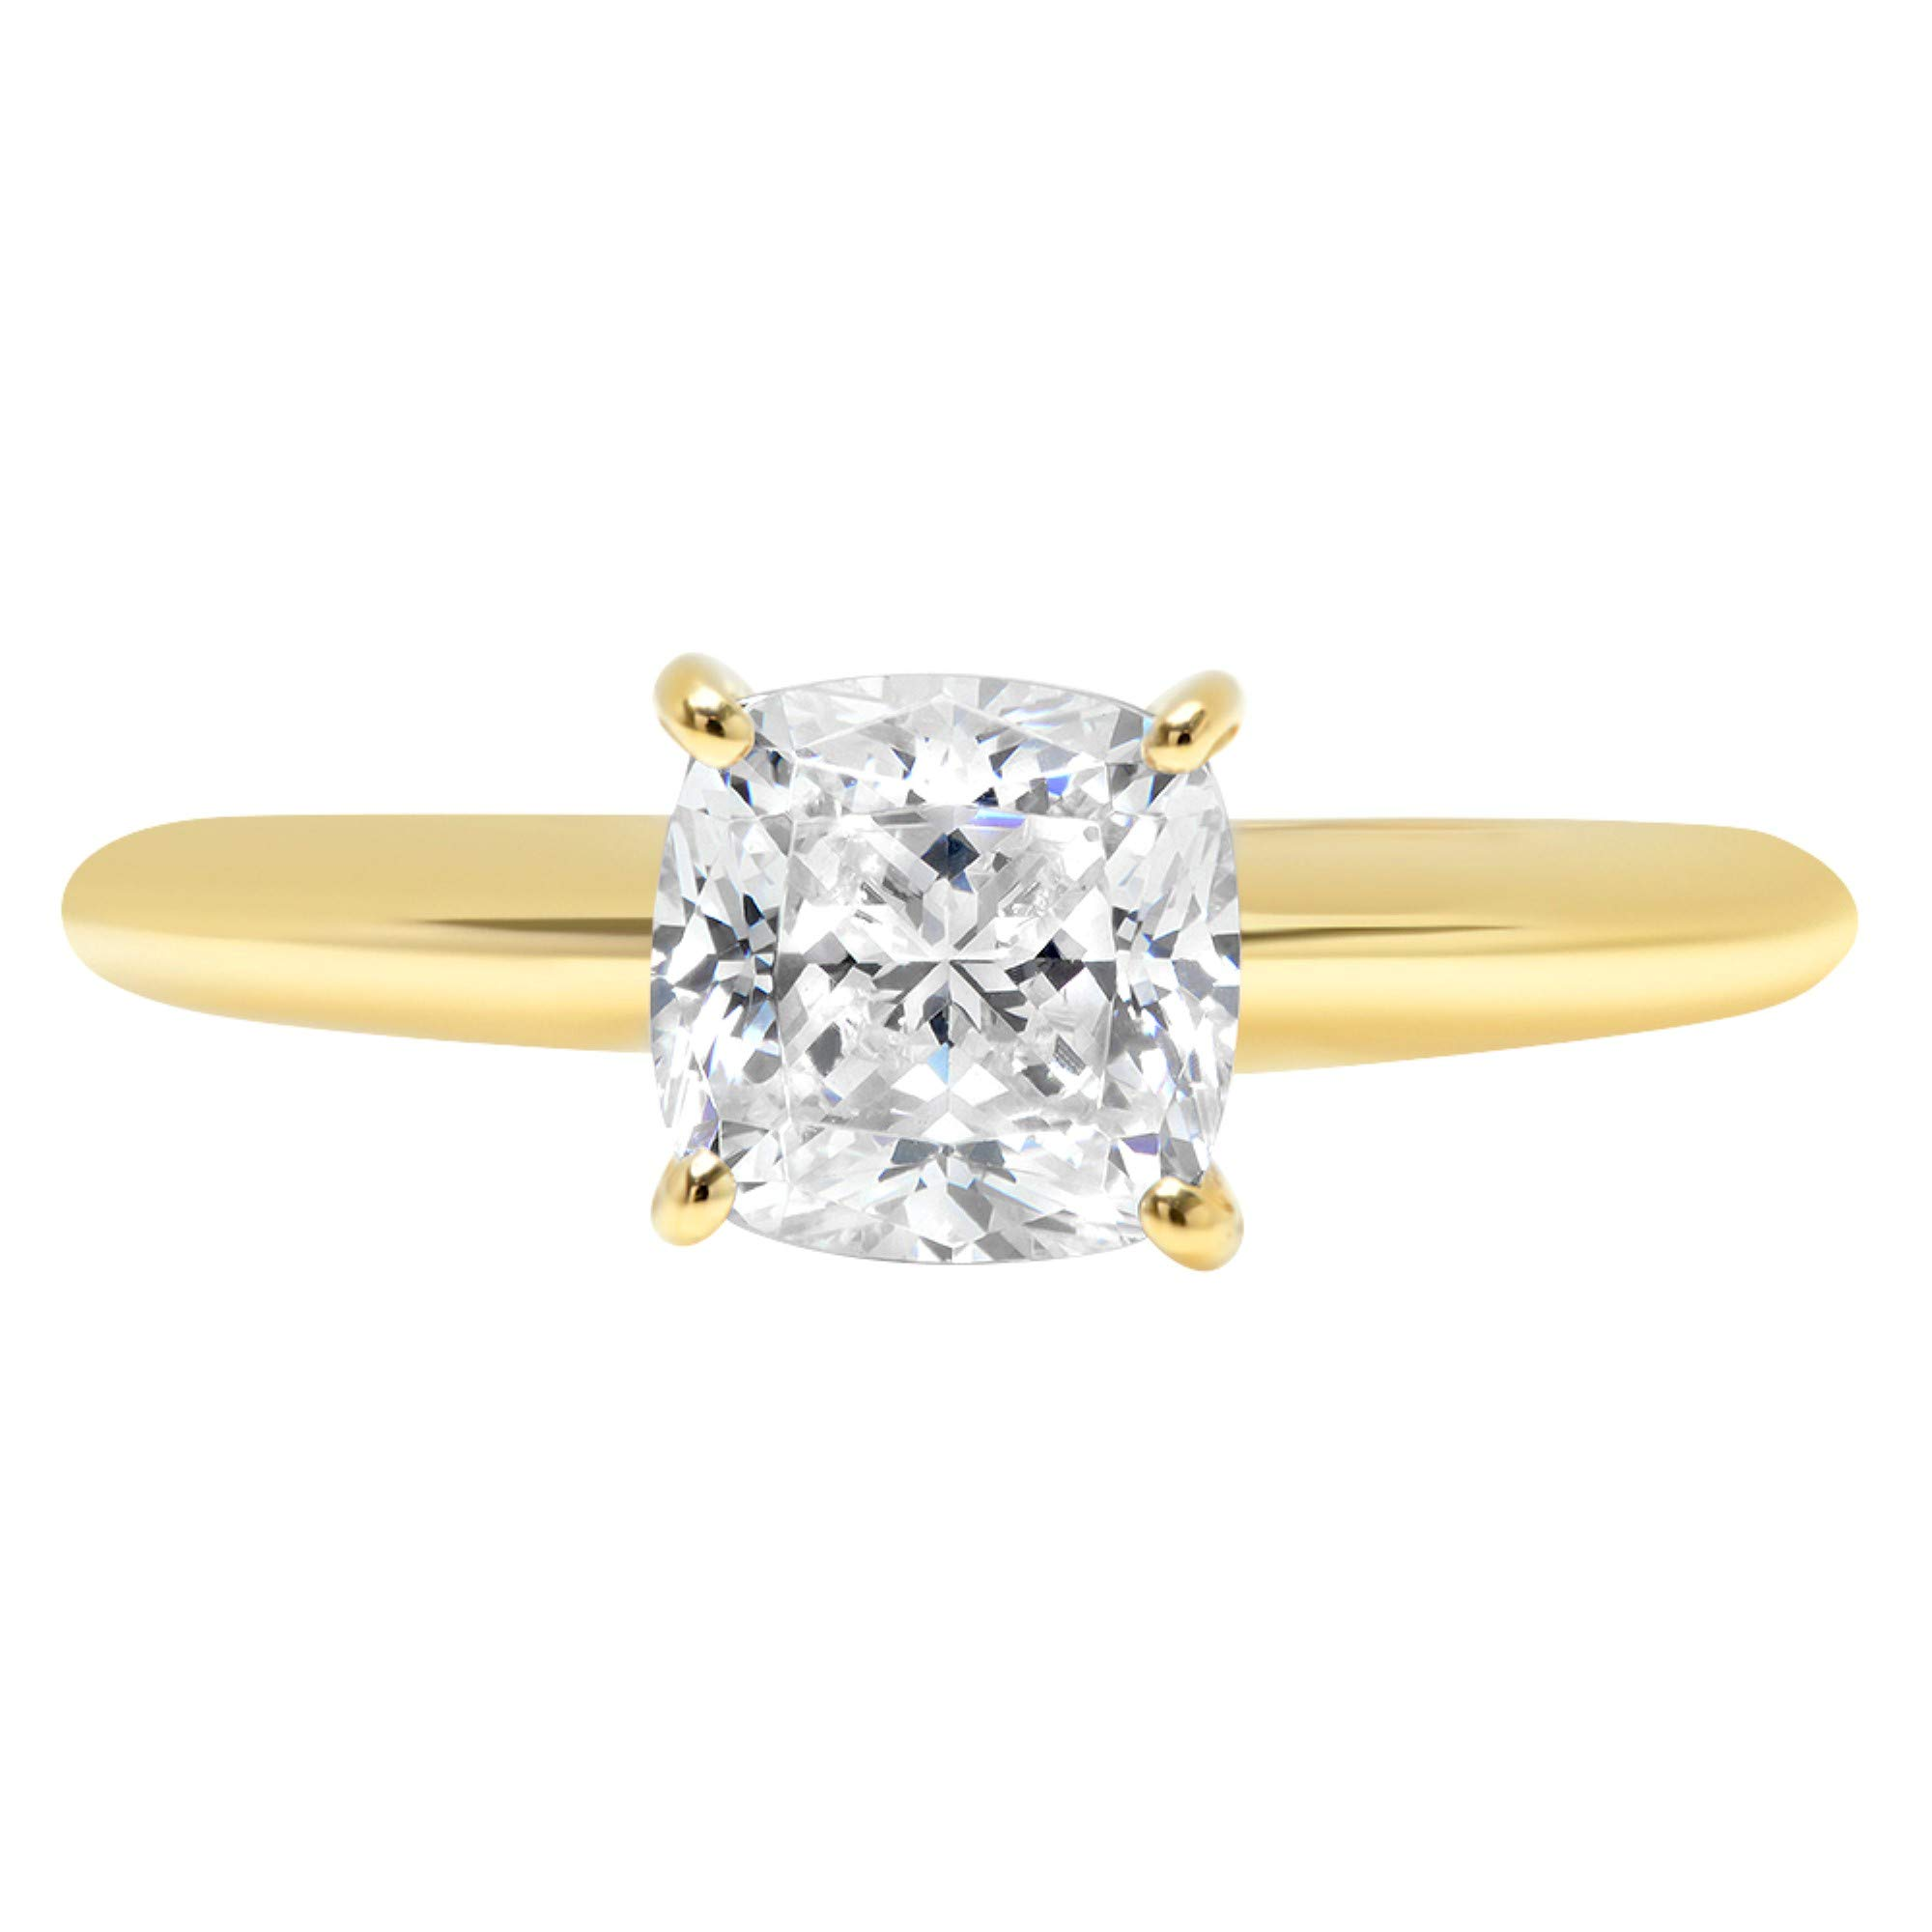 1.4ct Brilliant Cushion Cut Solitaire Highest Quality Lab Created White Sapphire Ideal VVS1 D 4-Prong Engagement Wedding Bridal Promise Anniversary Ring Solid Real 14k Yellow Gold for Women